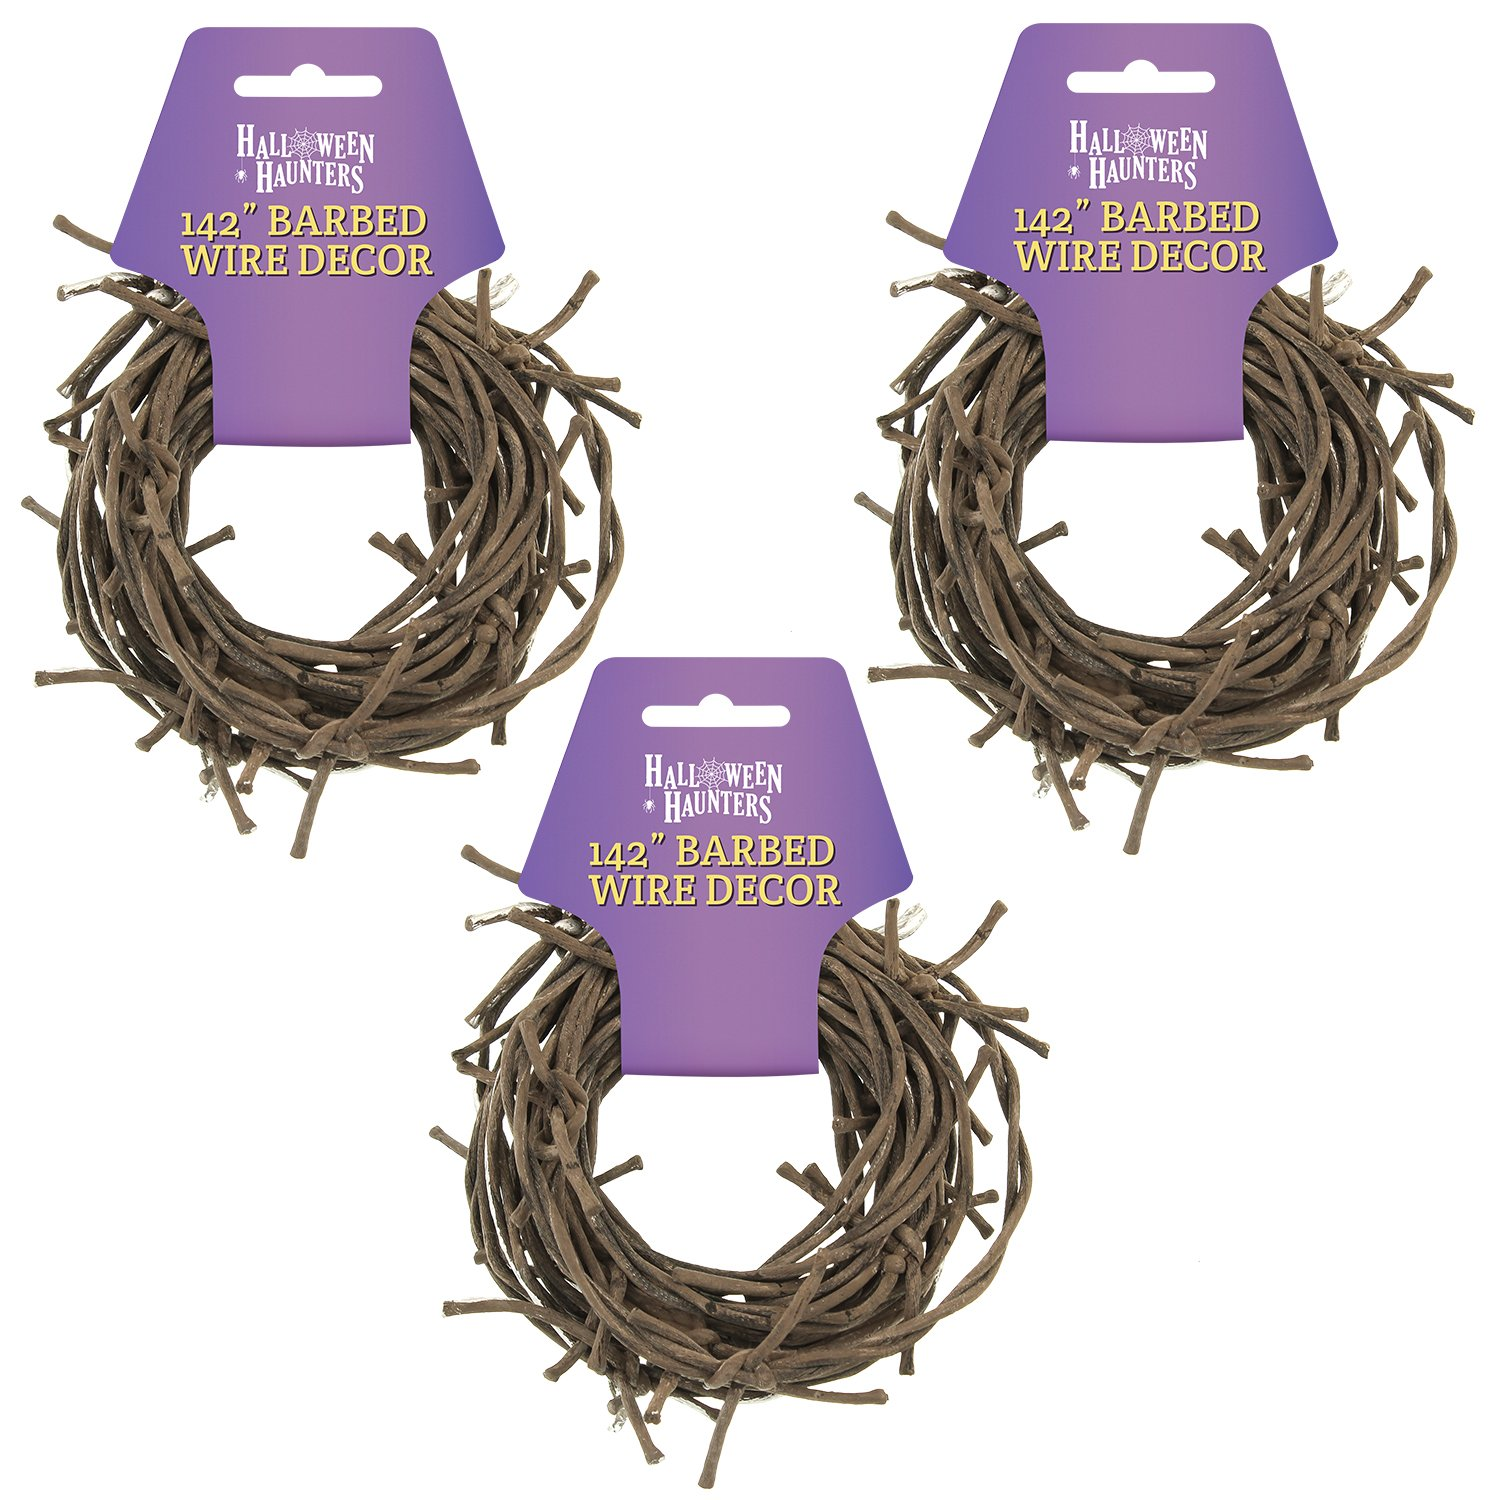 Halloween Haunters 142 inch Strand of Rusty Western Theme Barbed Wire Garland Decor Prop Decoration (Pack of 3-142'' strands - Total of 35 feet 5 inches)